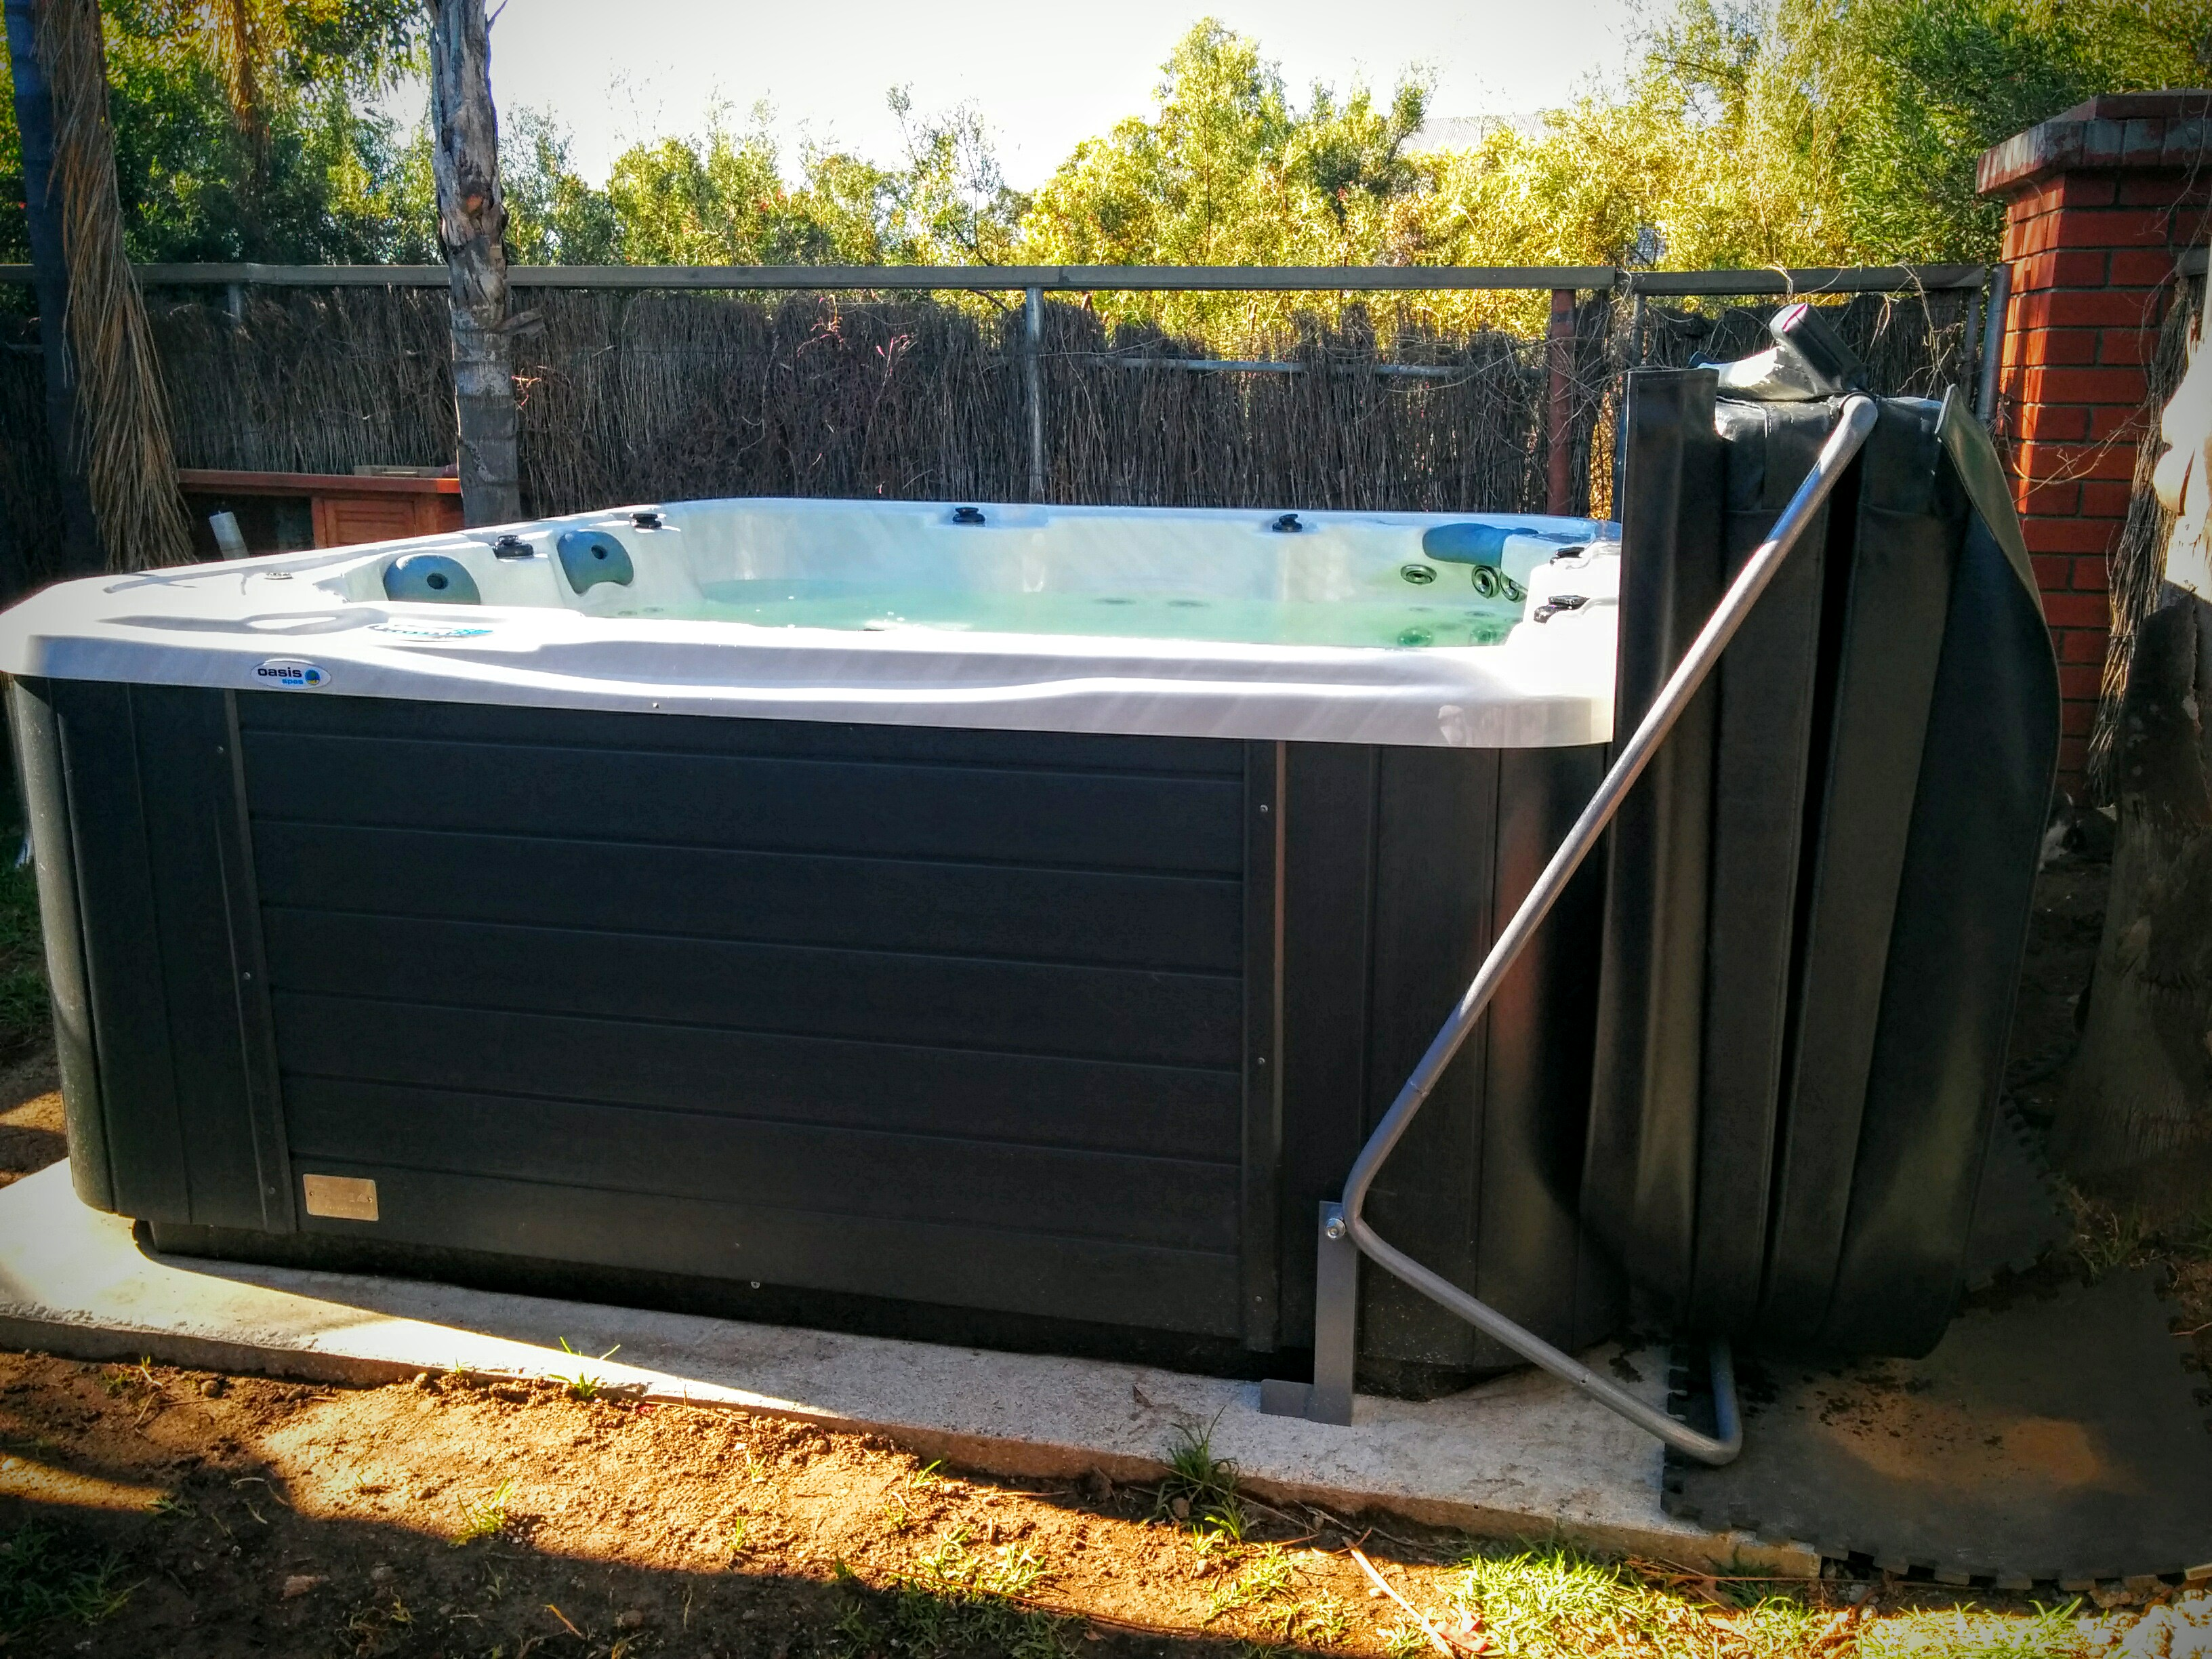 covana hot spas evolution specialty tub and isaacs covers pools products